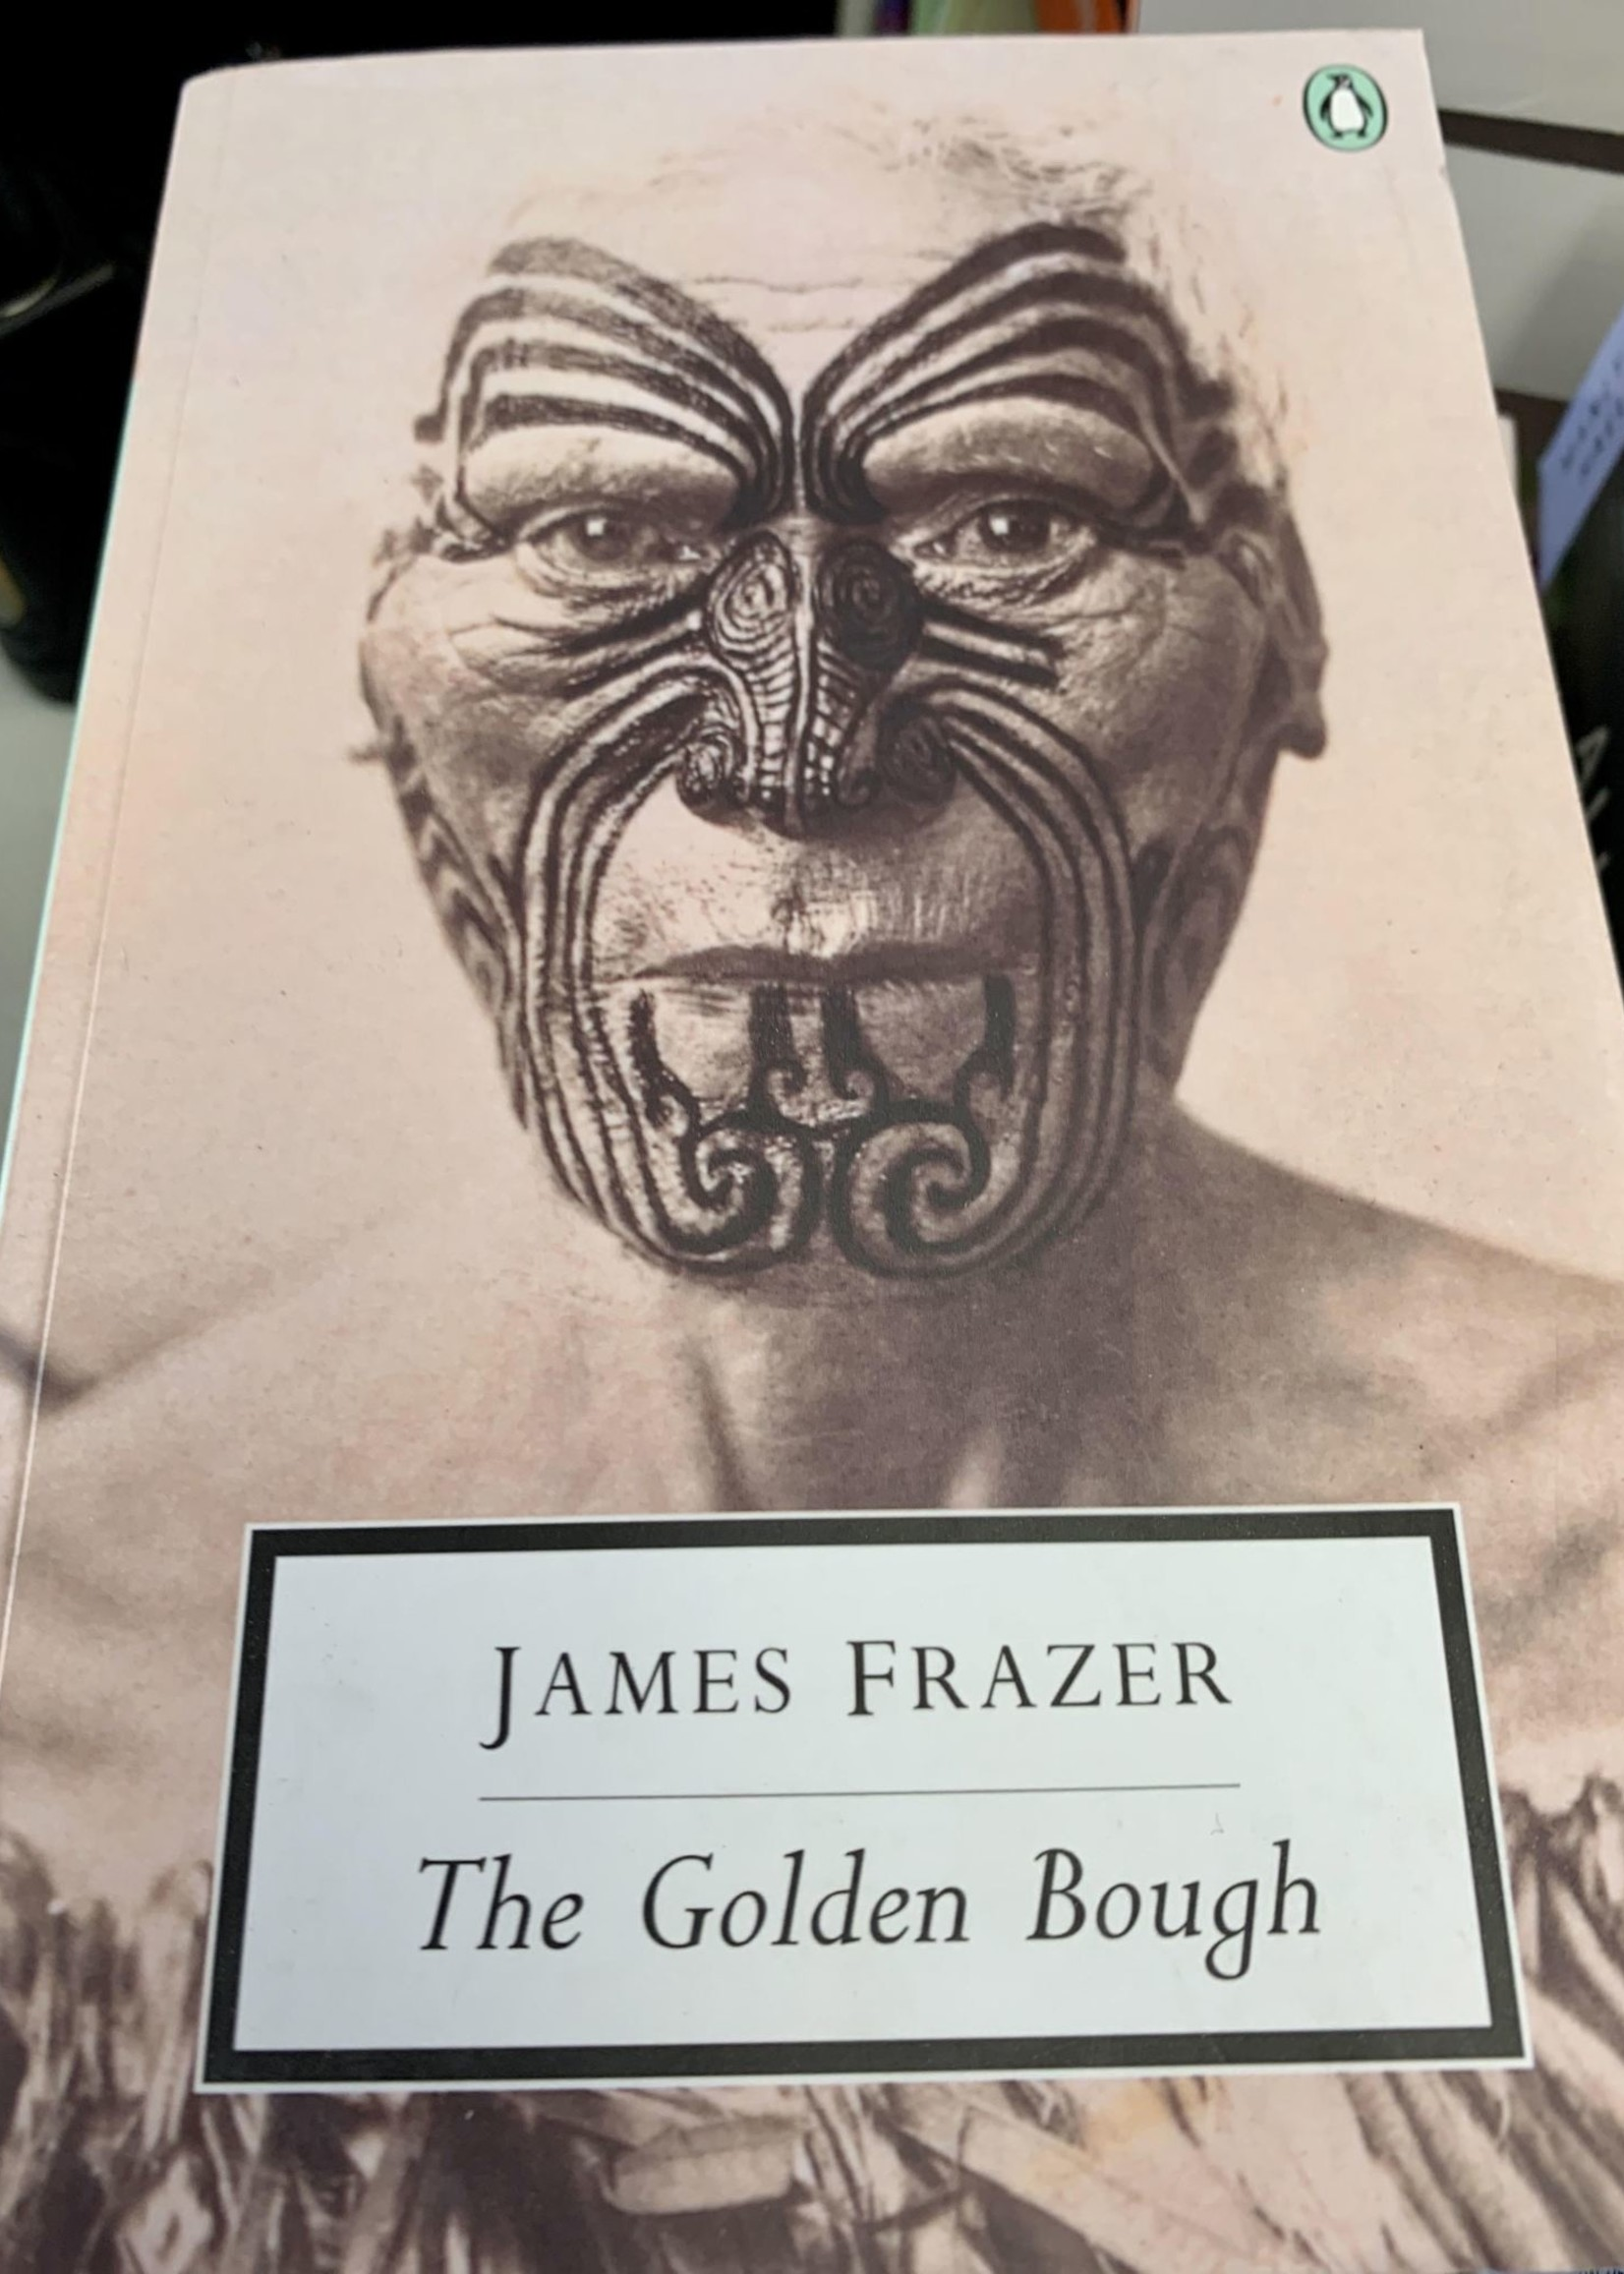 The Golden Bough ABRIDGED EDITION - By JAMES FRAZER Introduction by George W. Stocking